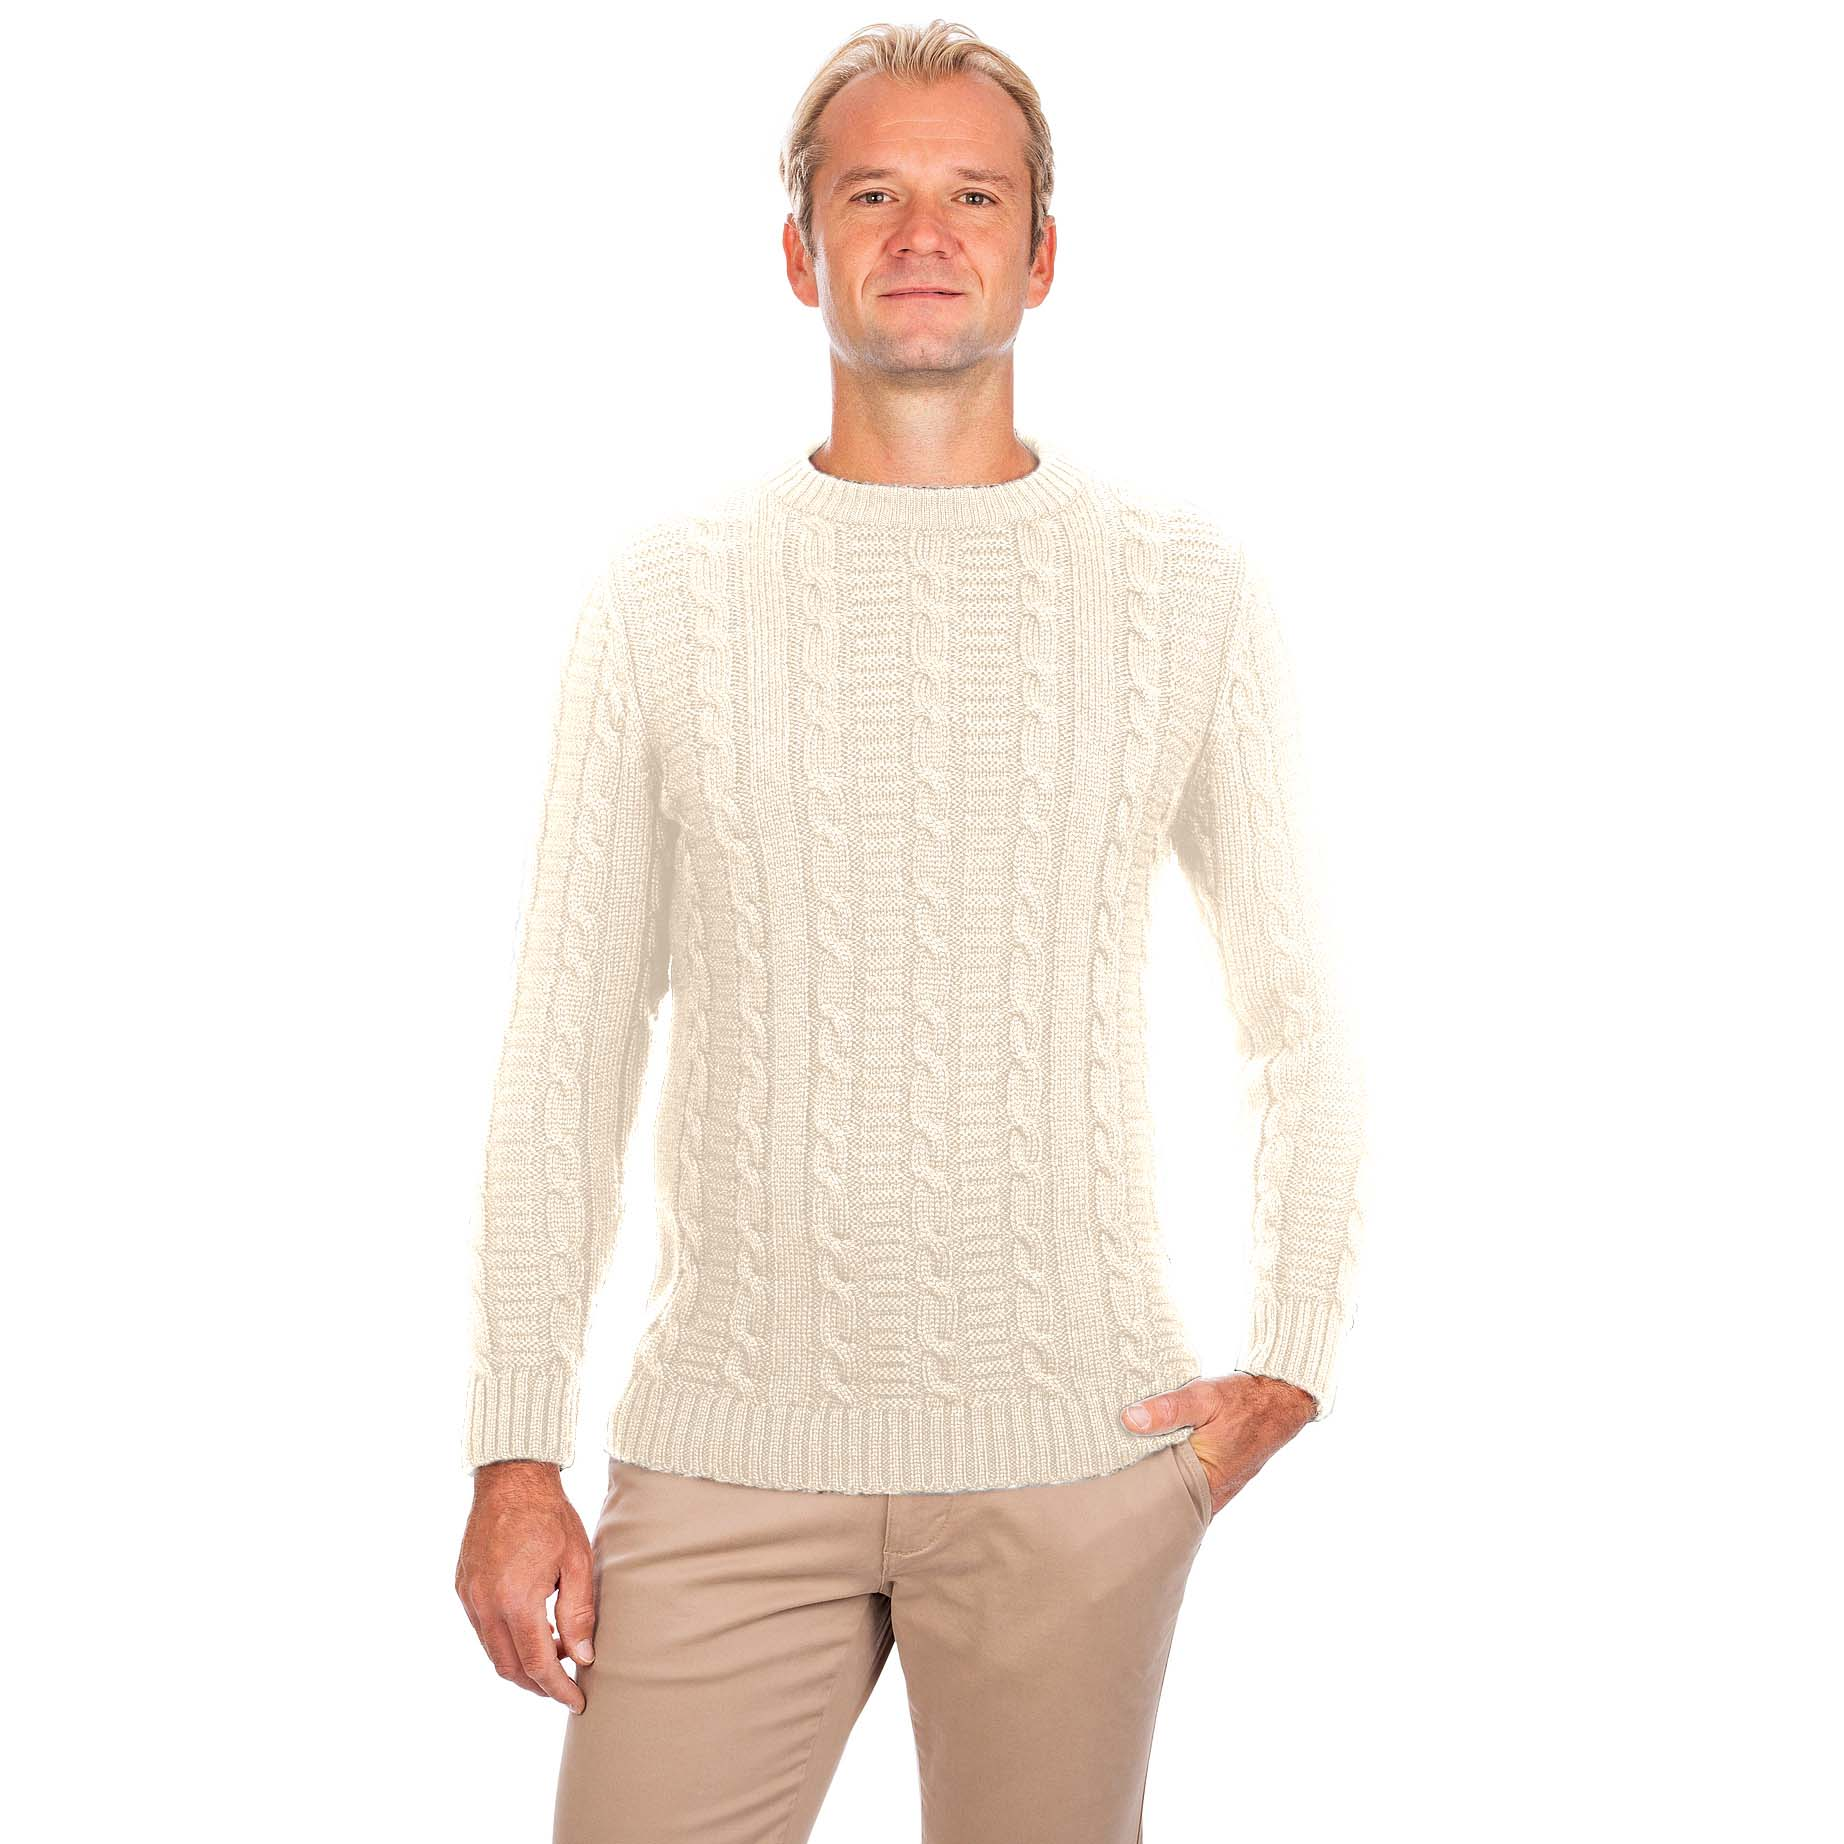 Irish Sweater | Cable Knit Crew Neck Mens Sweater